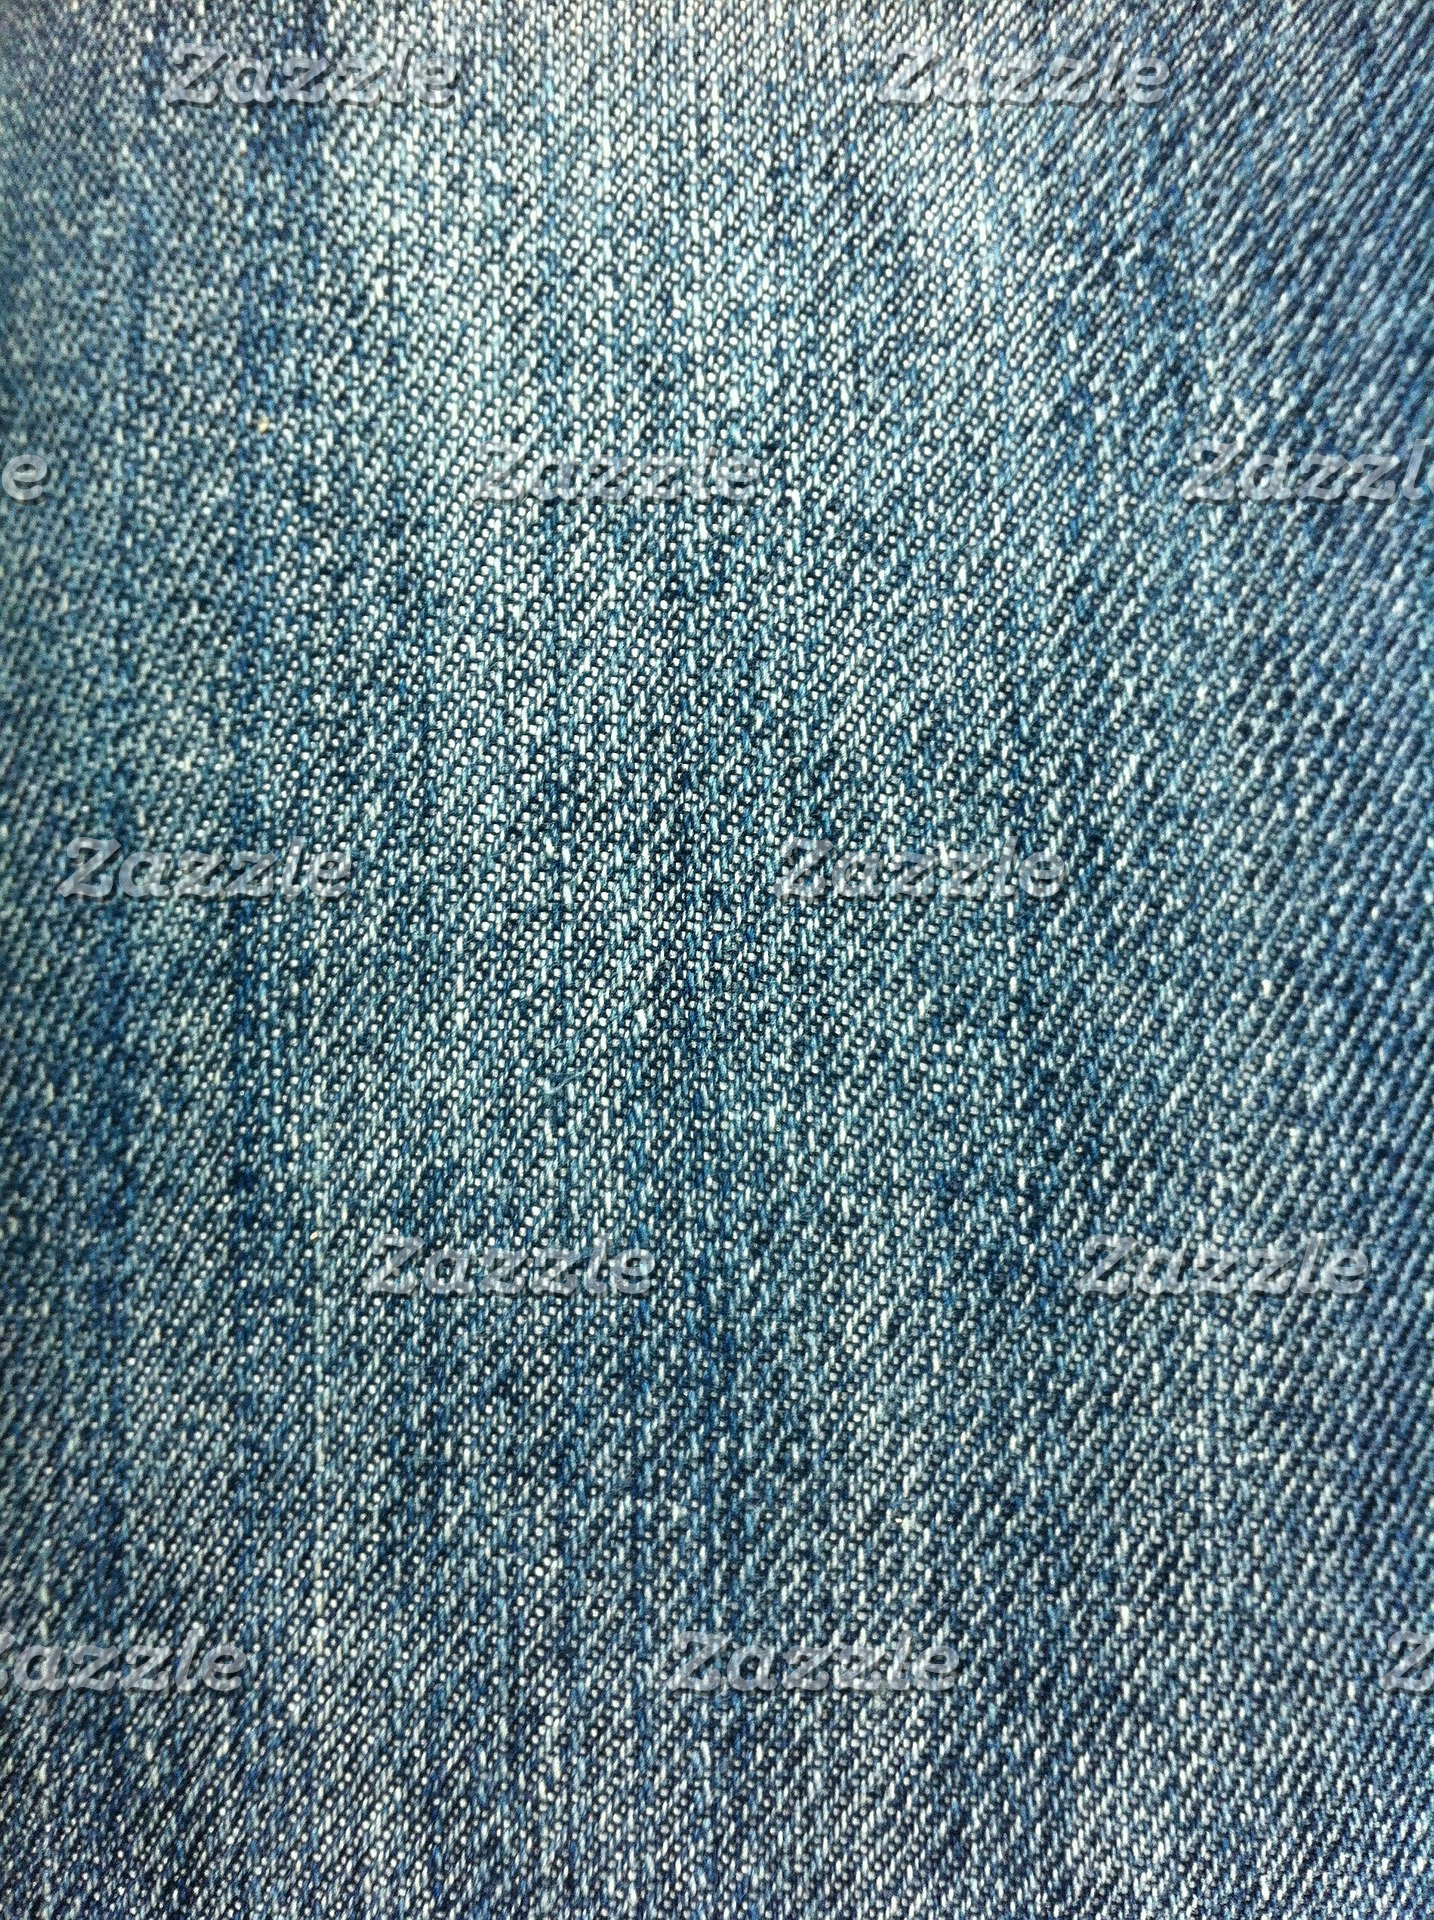 Denim and fabric